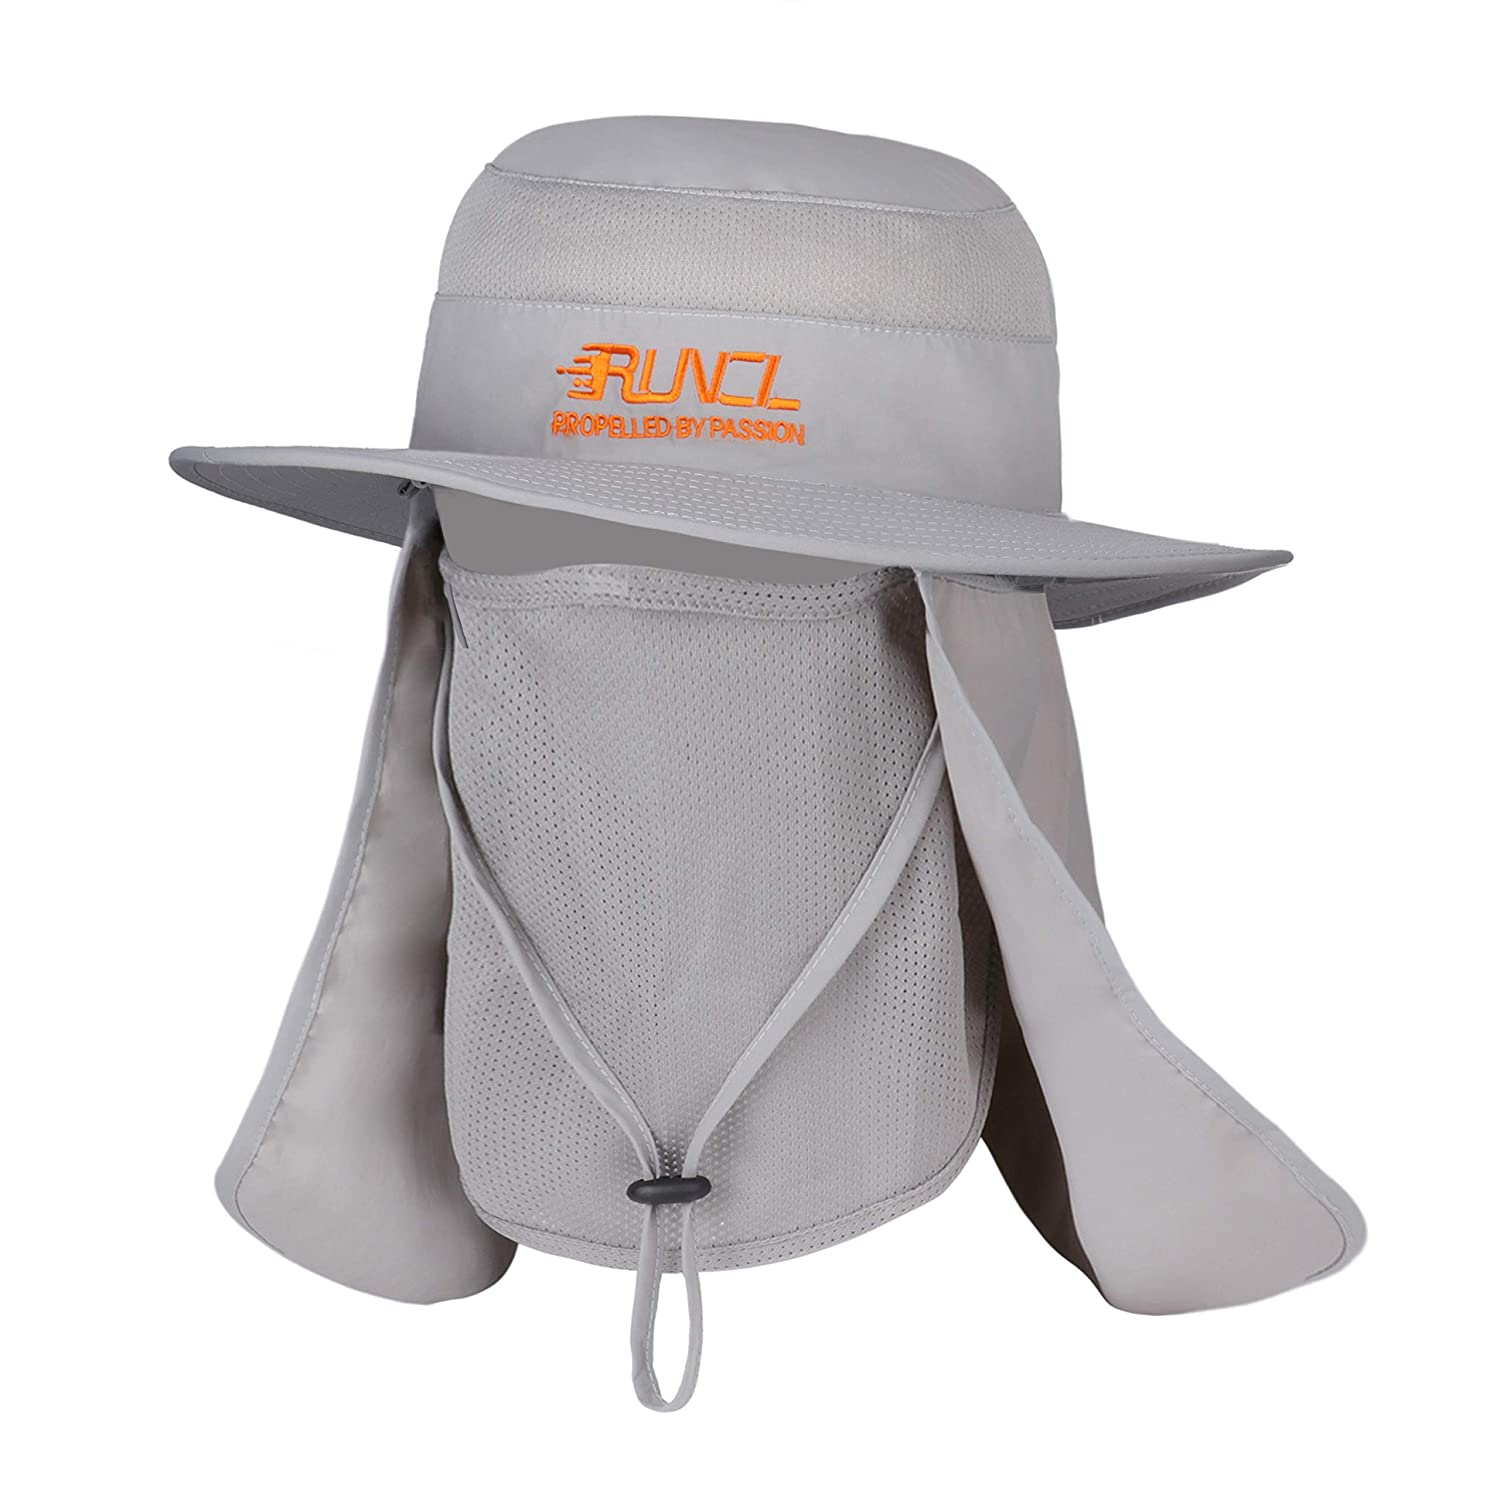 RUNCL Sun Cap, Fishing Hat Sun Protection, Bucket Hat – Wide Brim, Breathable Face Mask, Removable Neck Flap, Adjustable Chin Drawstring – Fishing Hiking Cycling Traveling Landscaping Mowing